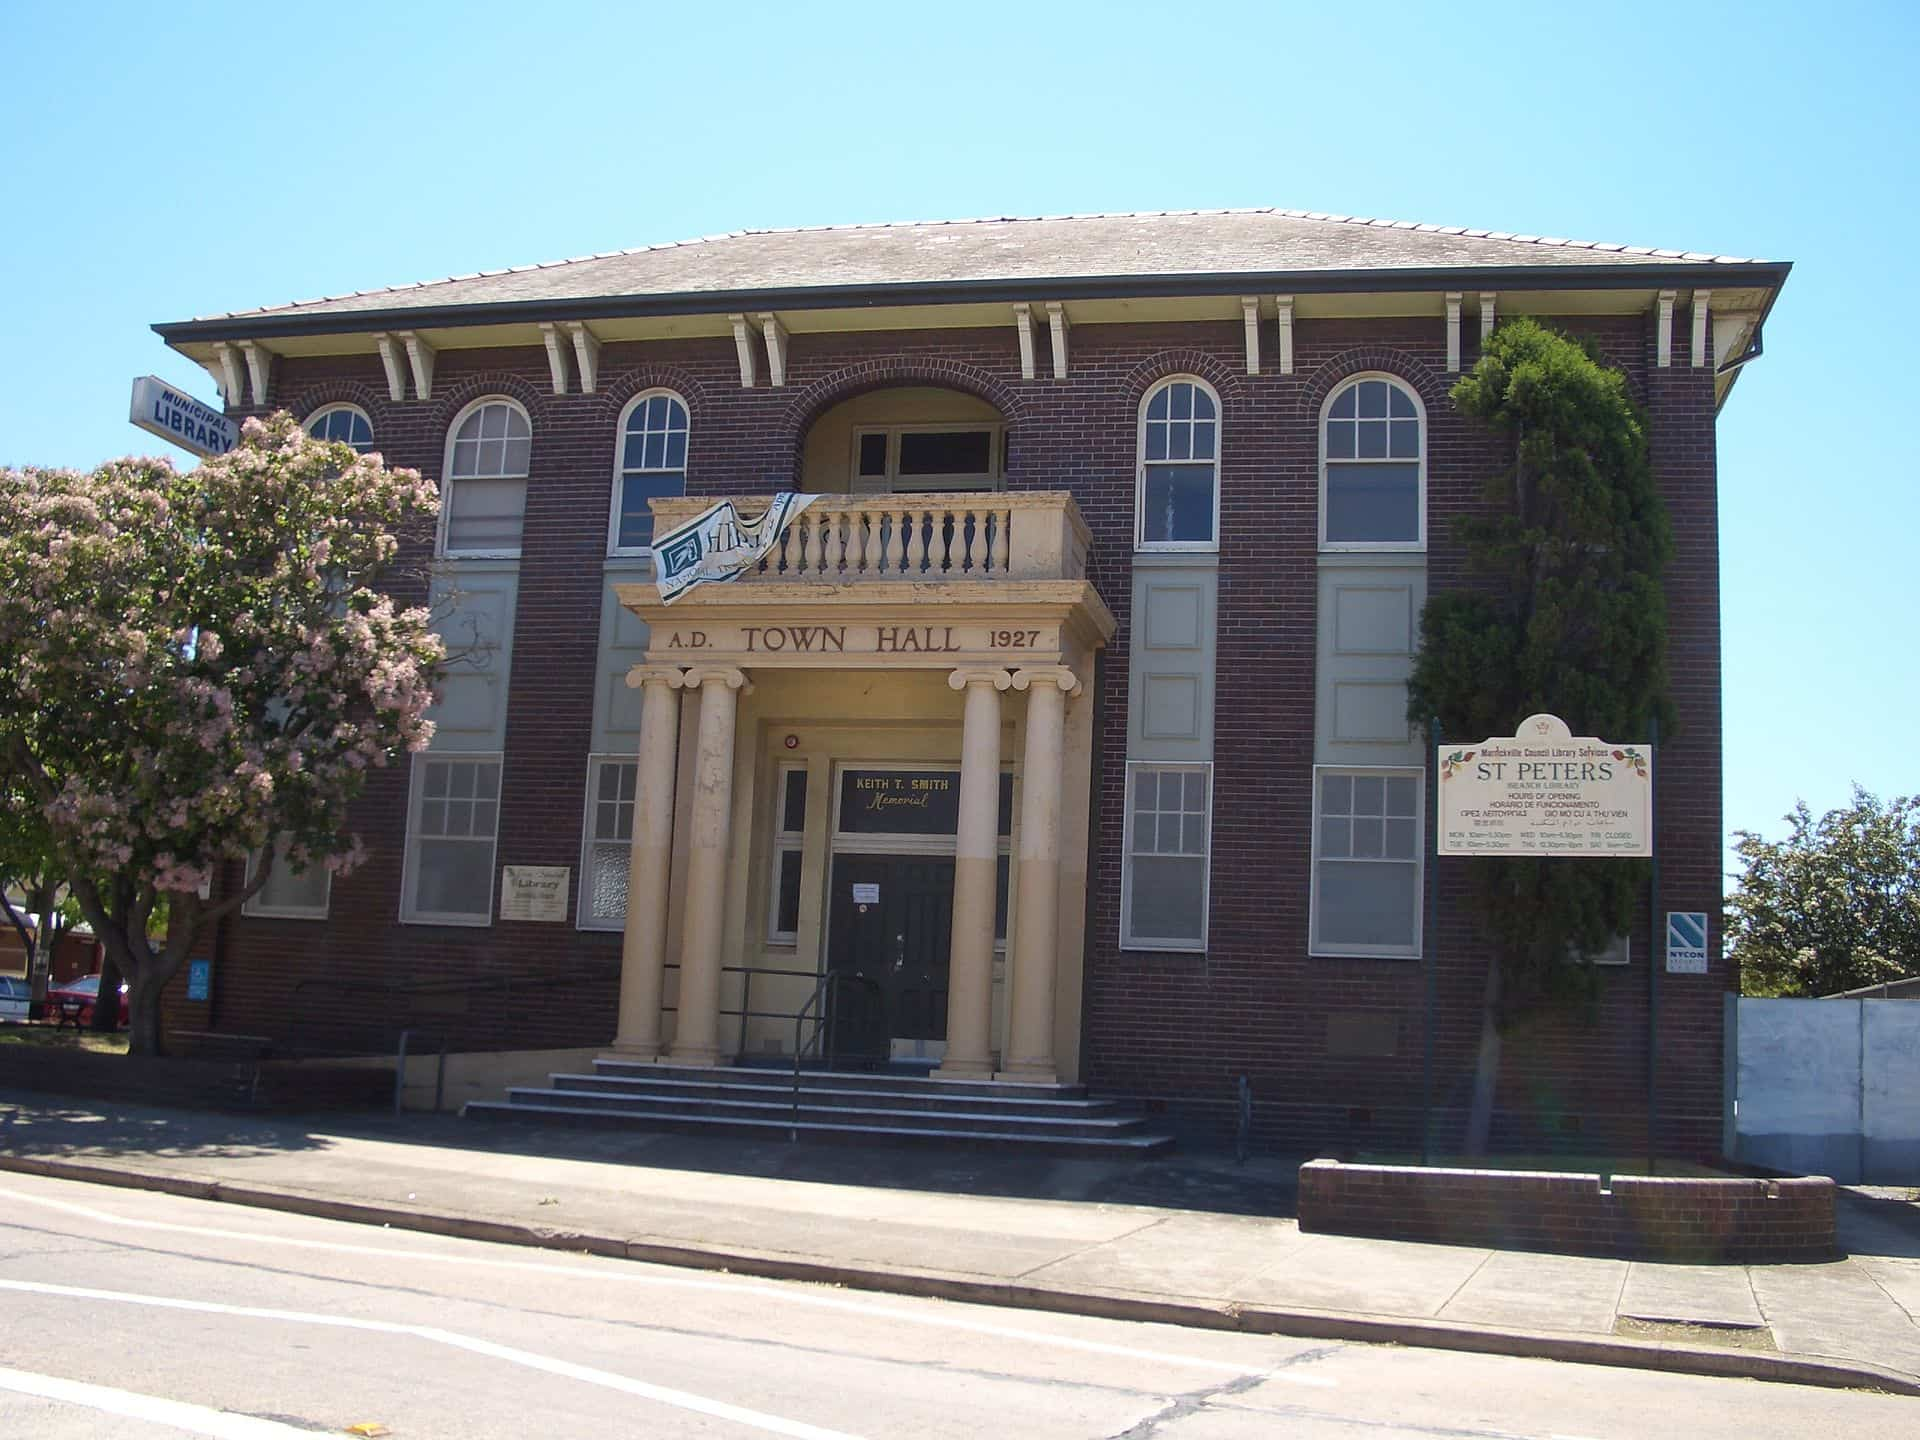 St Peters nsw